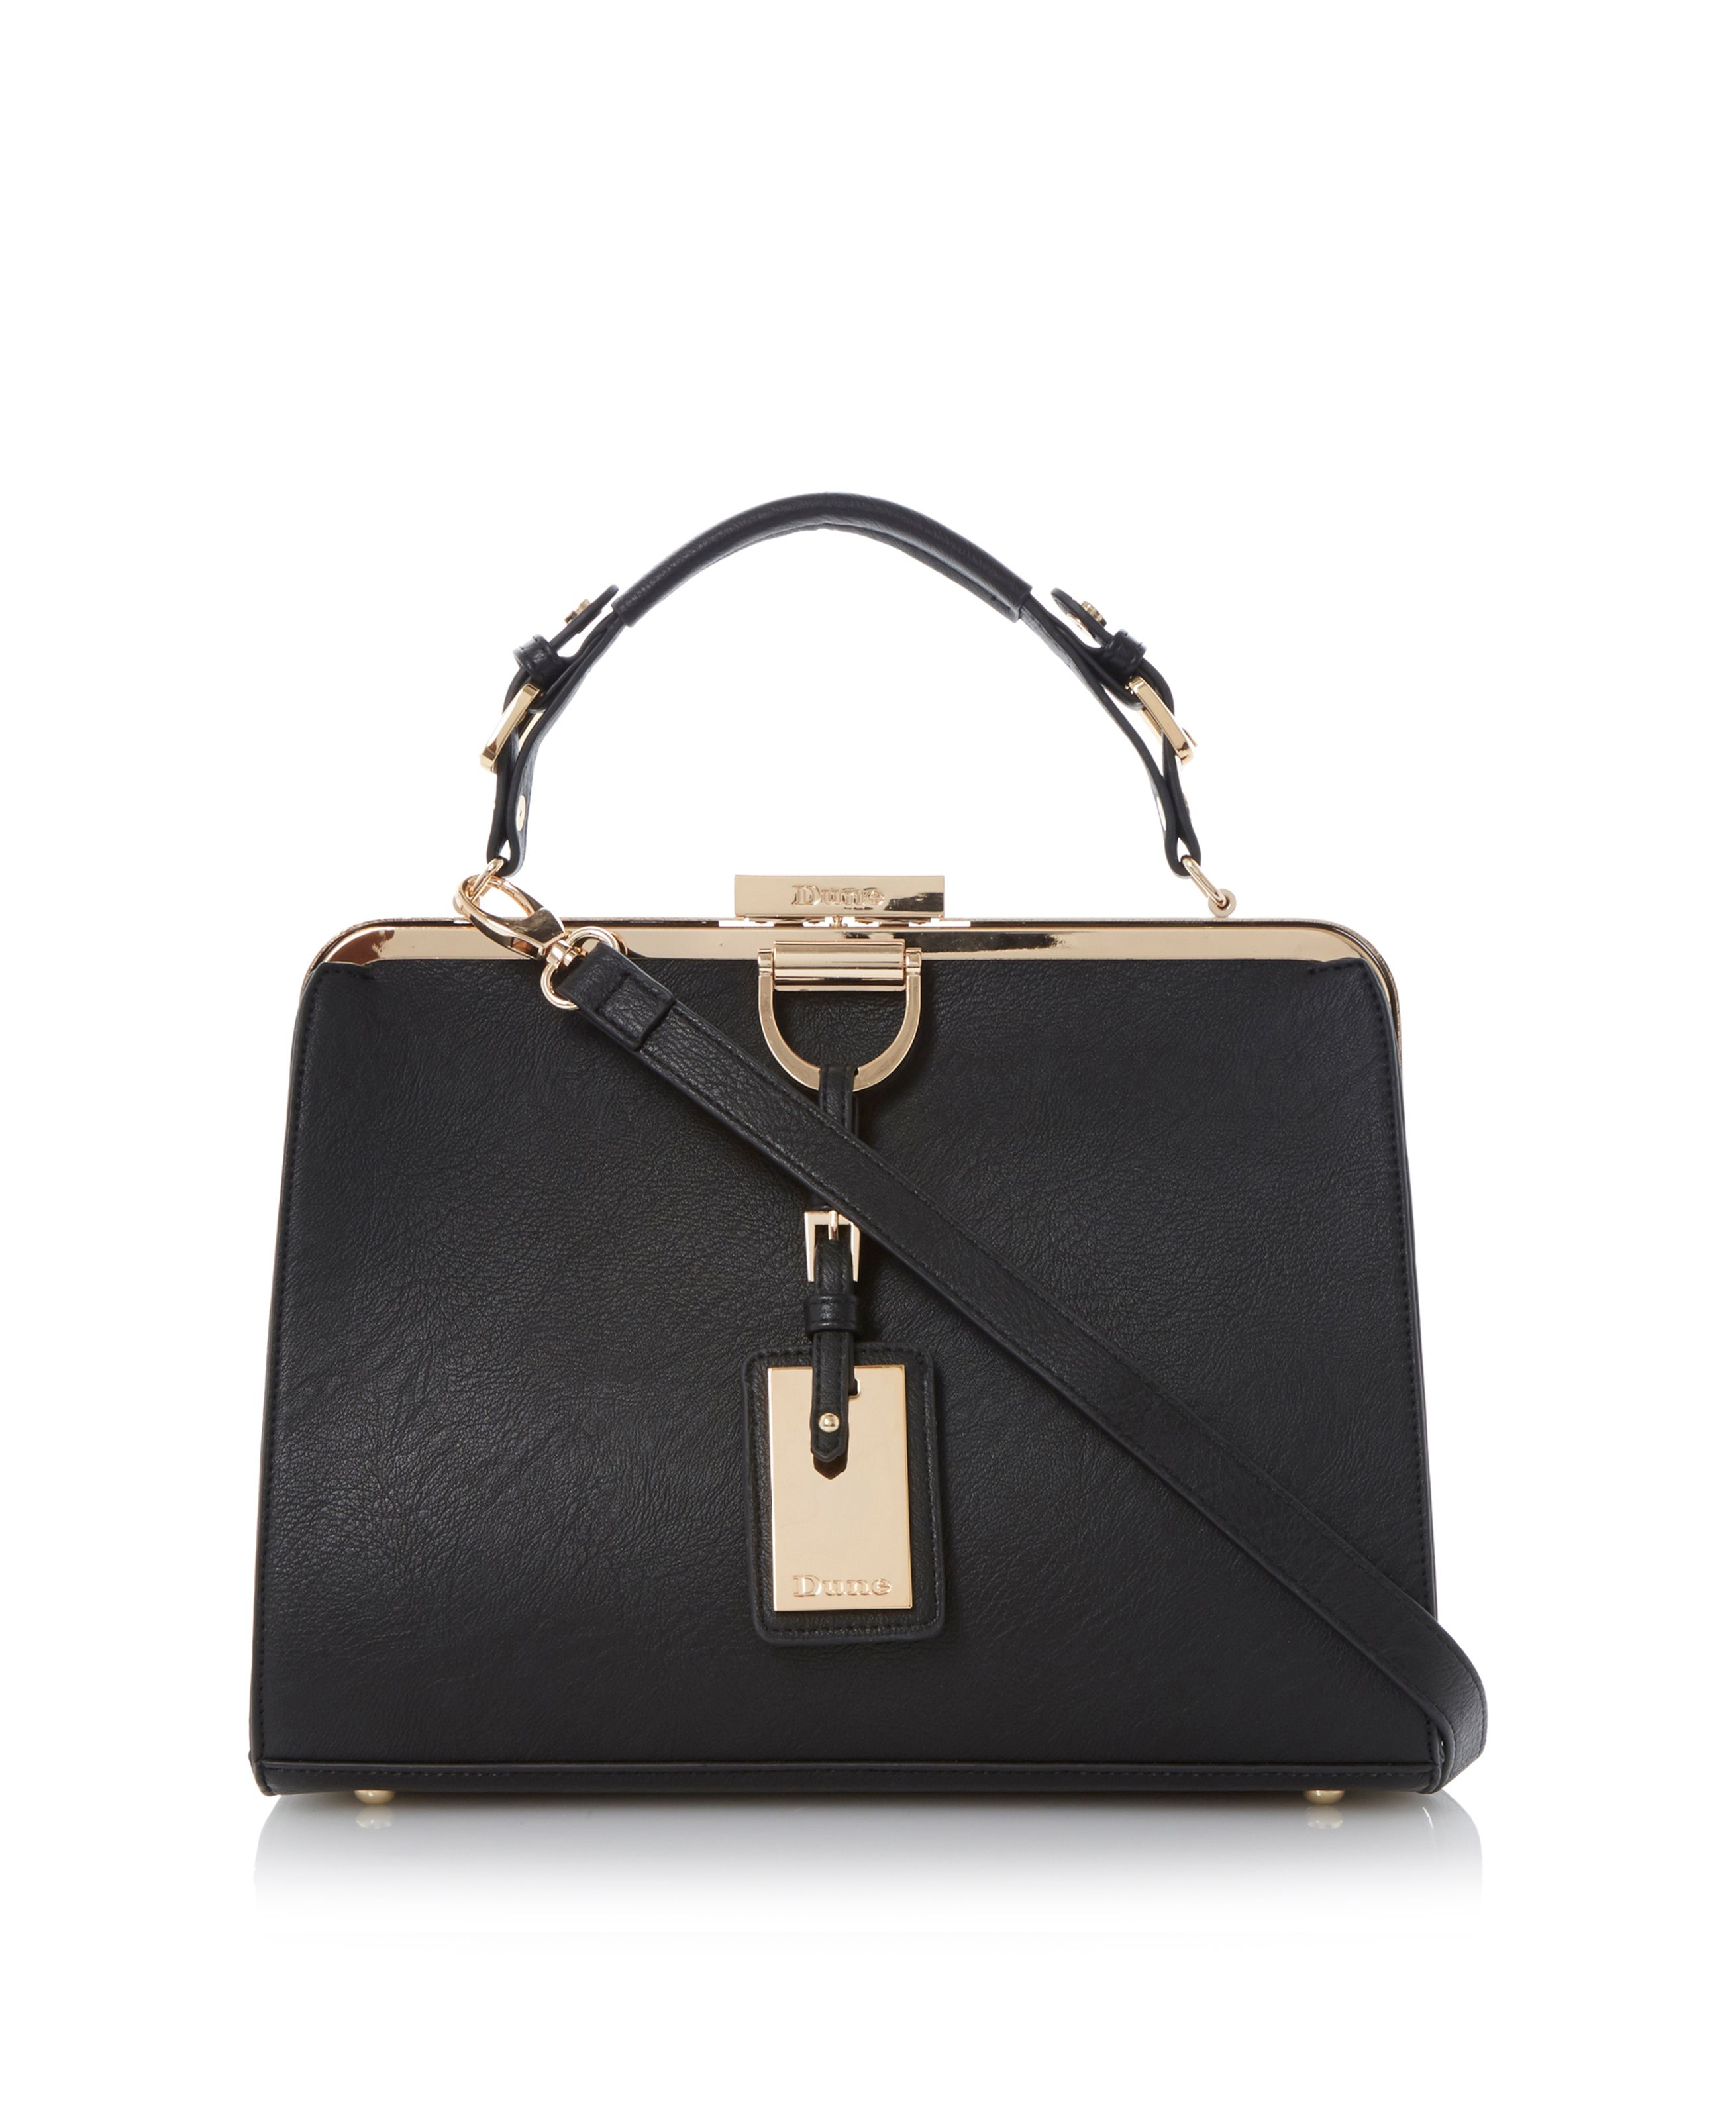 Dalley metal frame detail bag